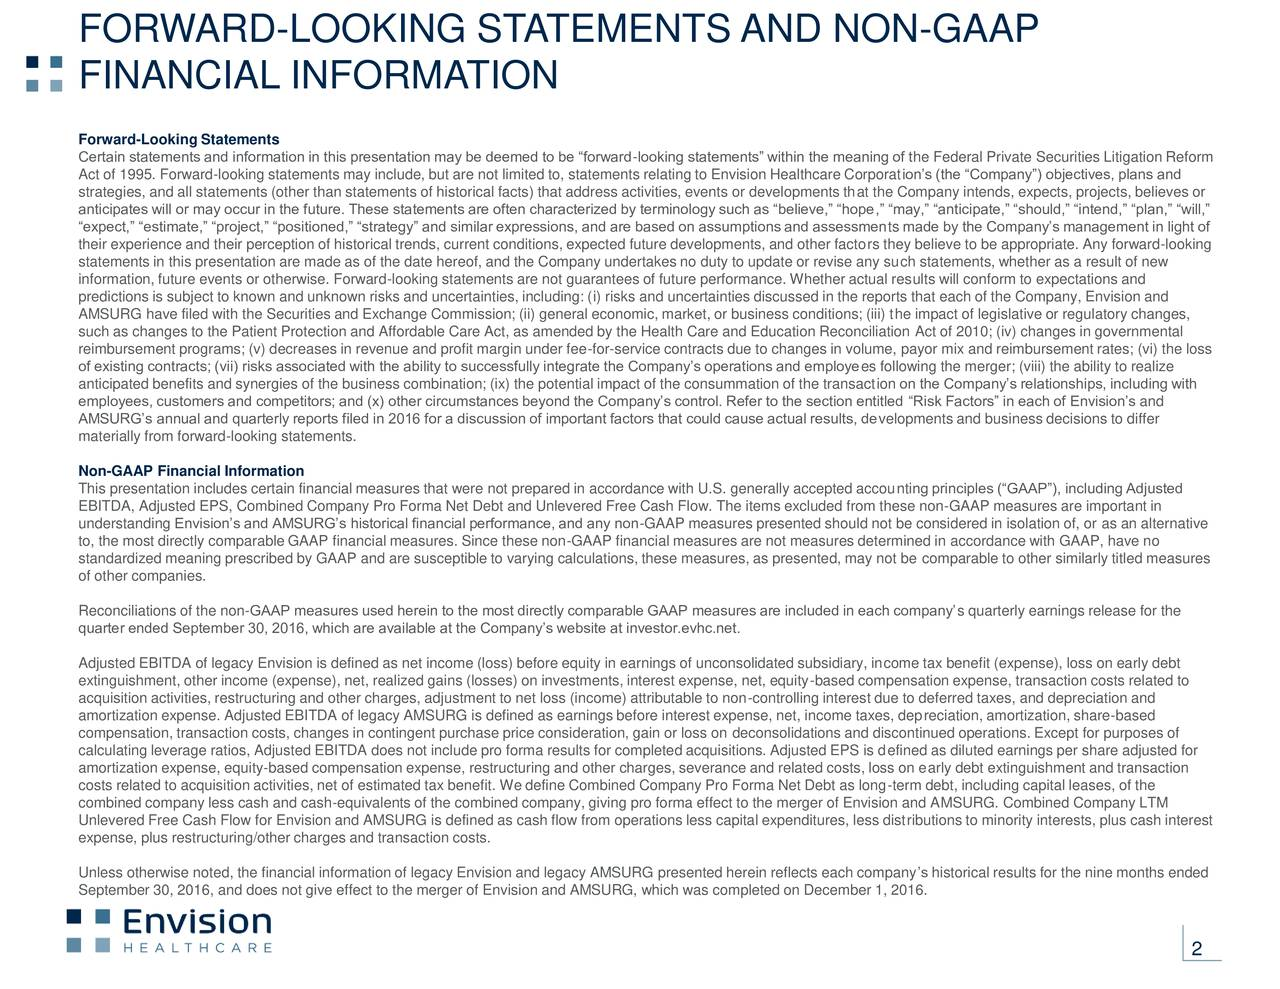 FINANCIAL INFORMATION Forward-Looking Statements Certain statements and information in this presentation may be deemed to be forward-looking statements within the meaning of the Federal Private Securities Litigation Reform Act of 1995. Forward-looking statements may include, but are not limited to, statements relating to Envision Healthcare Corporations (the Company) objectives, plans and strategies, and all statements (other than statements of historical facts) that address activities, events or developments that the Company intends, expects, projects, believes or anticipates will or may occur in the future. These statements are often characterized by terminology such as believe, hope, may, anticipate, should, intend, plan, will, expect, estimate, project, positioned, strategy and similar expressions, and are based on assumptions and assessments made by the Companys management in light of their experience and their perception of historical trends, current conditions, expected future developments, and other factors they believe to be appropriate. Any forward-looking statements in this presentation are made as of the date hereof, and the Company undertakes no duty to update or revise any such statements, whether as a result of new information, future events or otherwise. Forward-looking statements are not guarantees of future performance. Whether actual results will conform to expectations and predictions is subject to known and unknown risks and uncertainties, including: (i) risks and uncertainties discussed in the reports that each of the Company, Envision and AMSURG have filed with the Securities and Exchange Commission; (ii) general economic, market, or business conditions; (iii) the impact of legislative or regulatory changes, such as changes to the Patient Protection and Affordable Care Act, as amended by the Health Care and Education Reconciliation Act of 2010; (iv) changes in governmental reimbursement programs; (v) decreases in revenue and profit margin unde